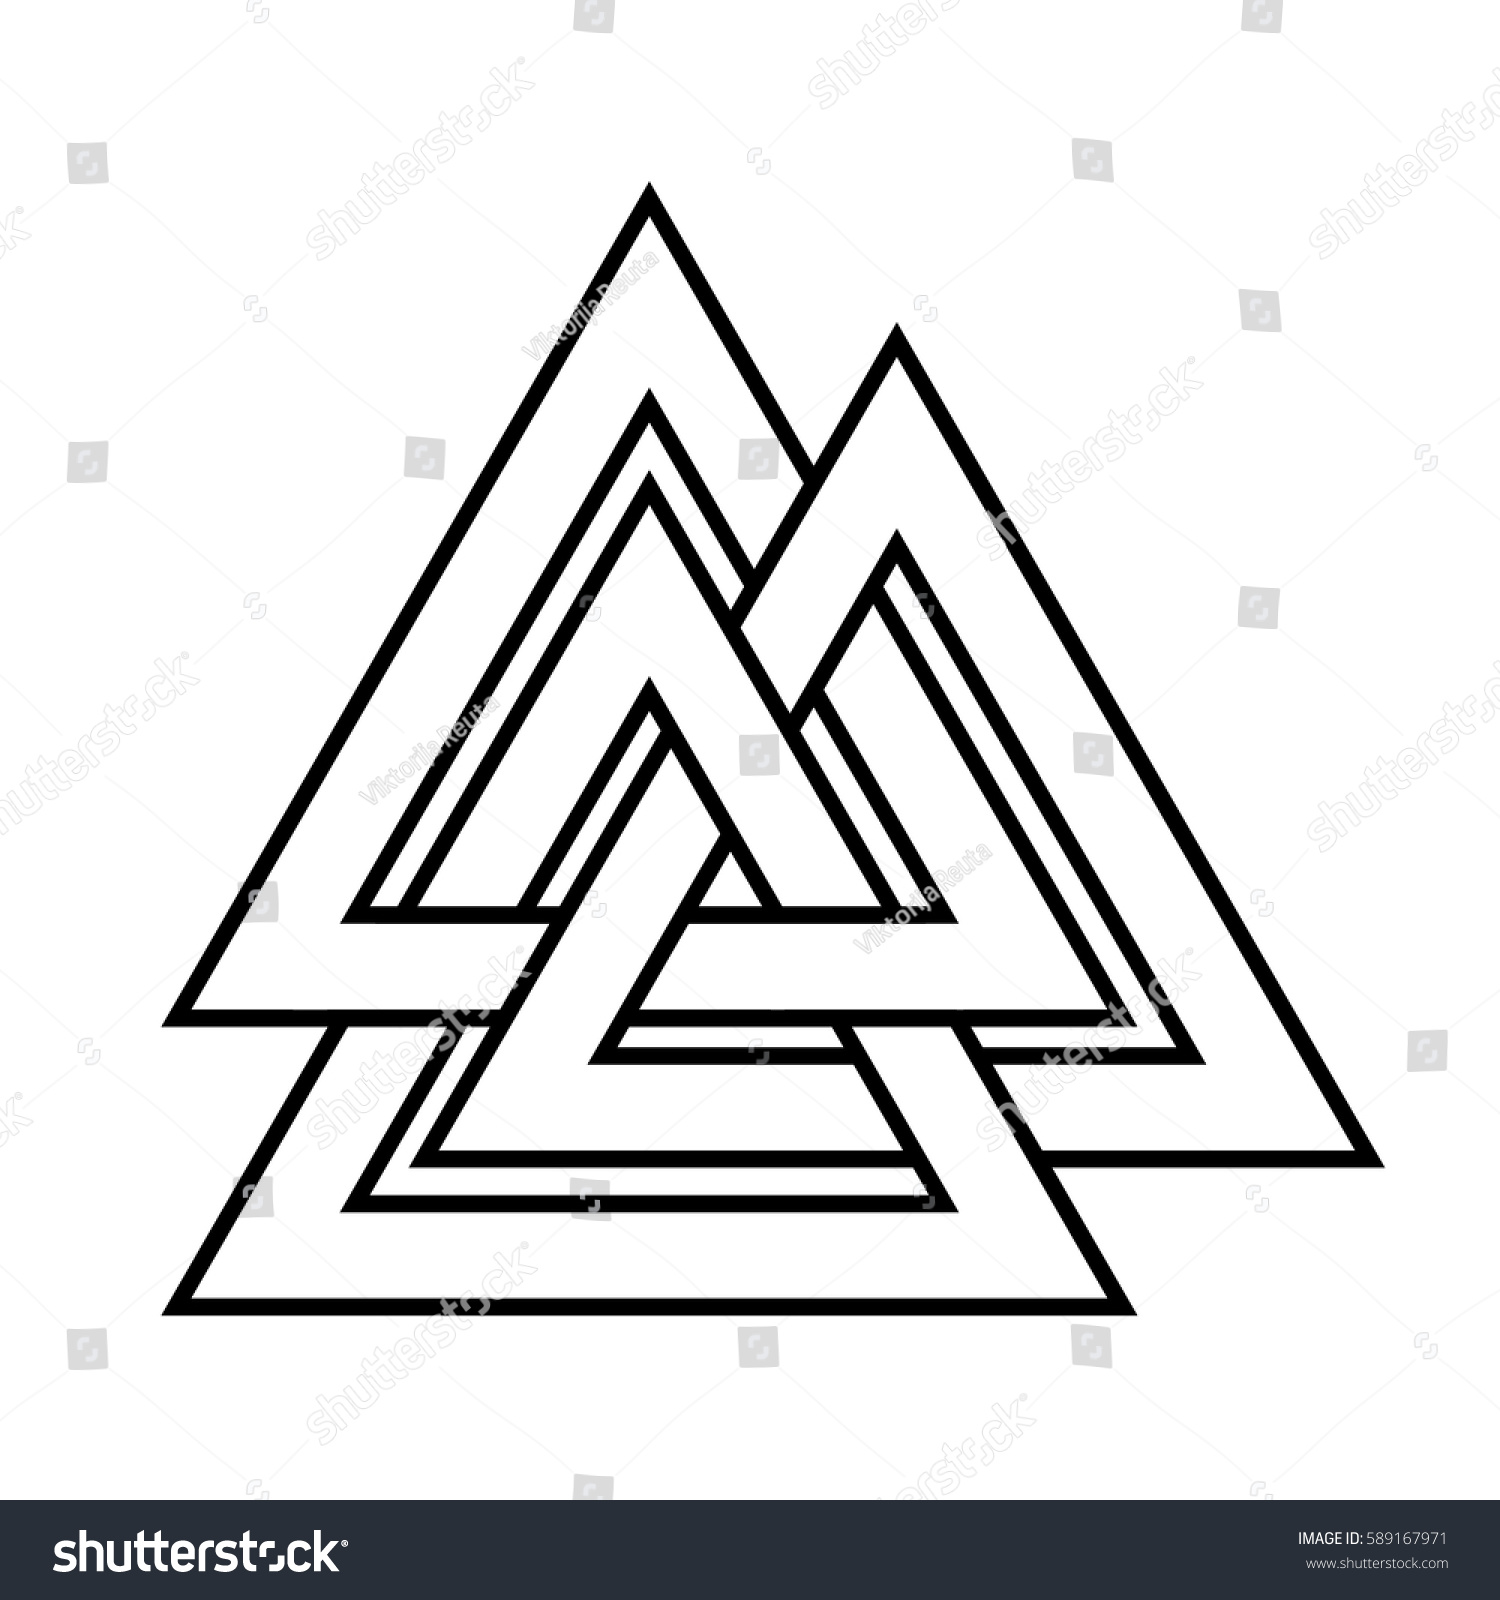 Royalty Free Valknut Symbol Of The World End Of The 589167971